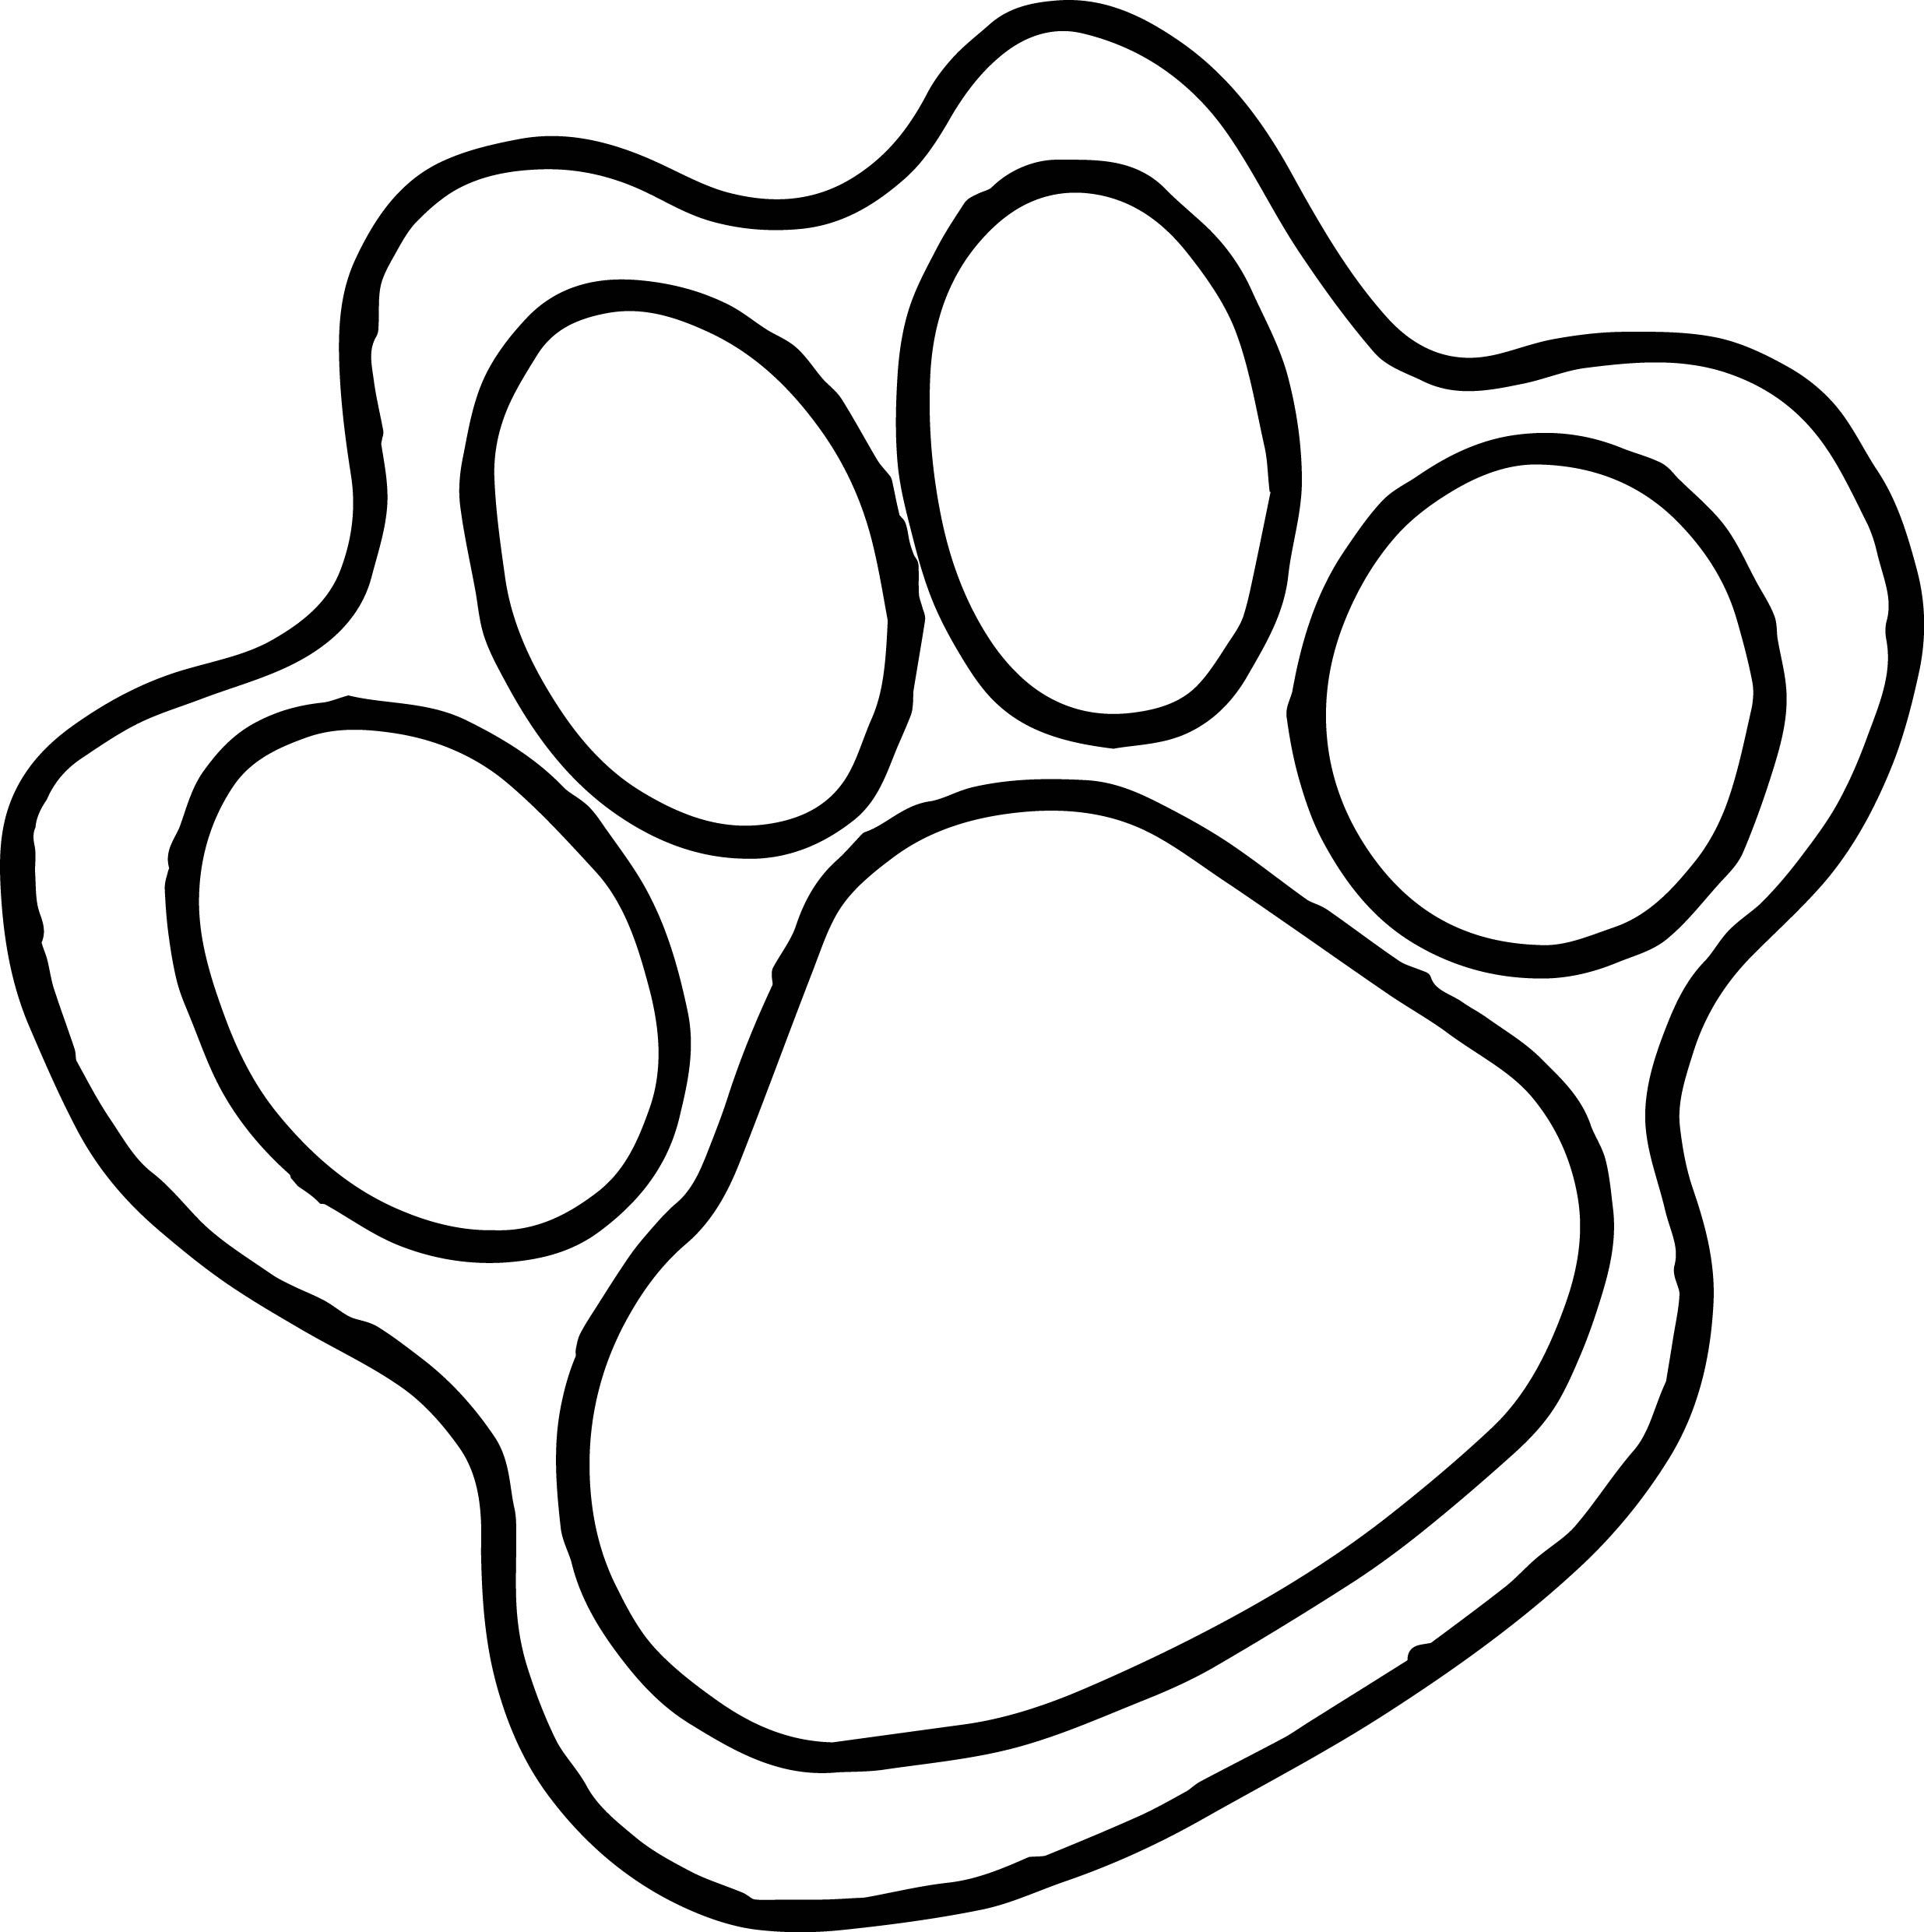 Dog Paws Drawing at GetDrawings.com | Free for personal use Dog Paws ...